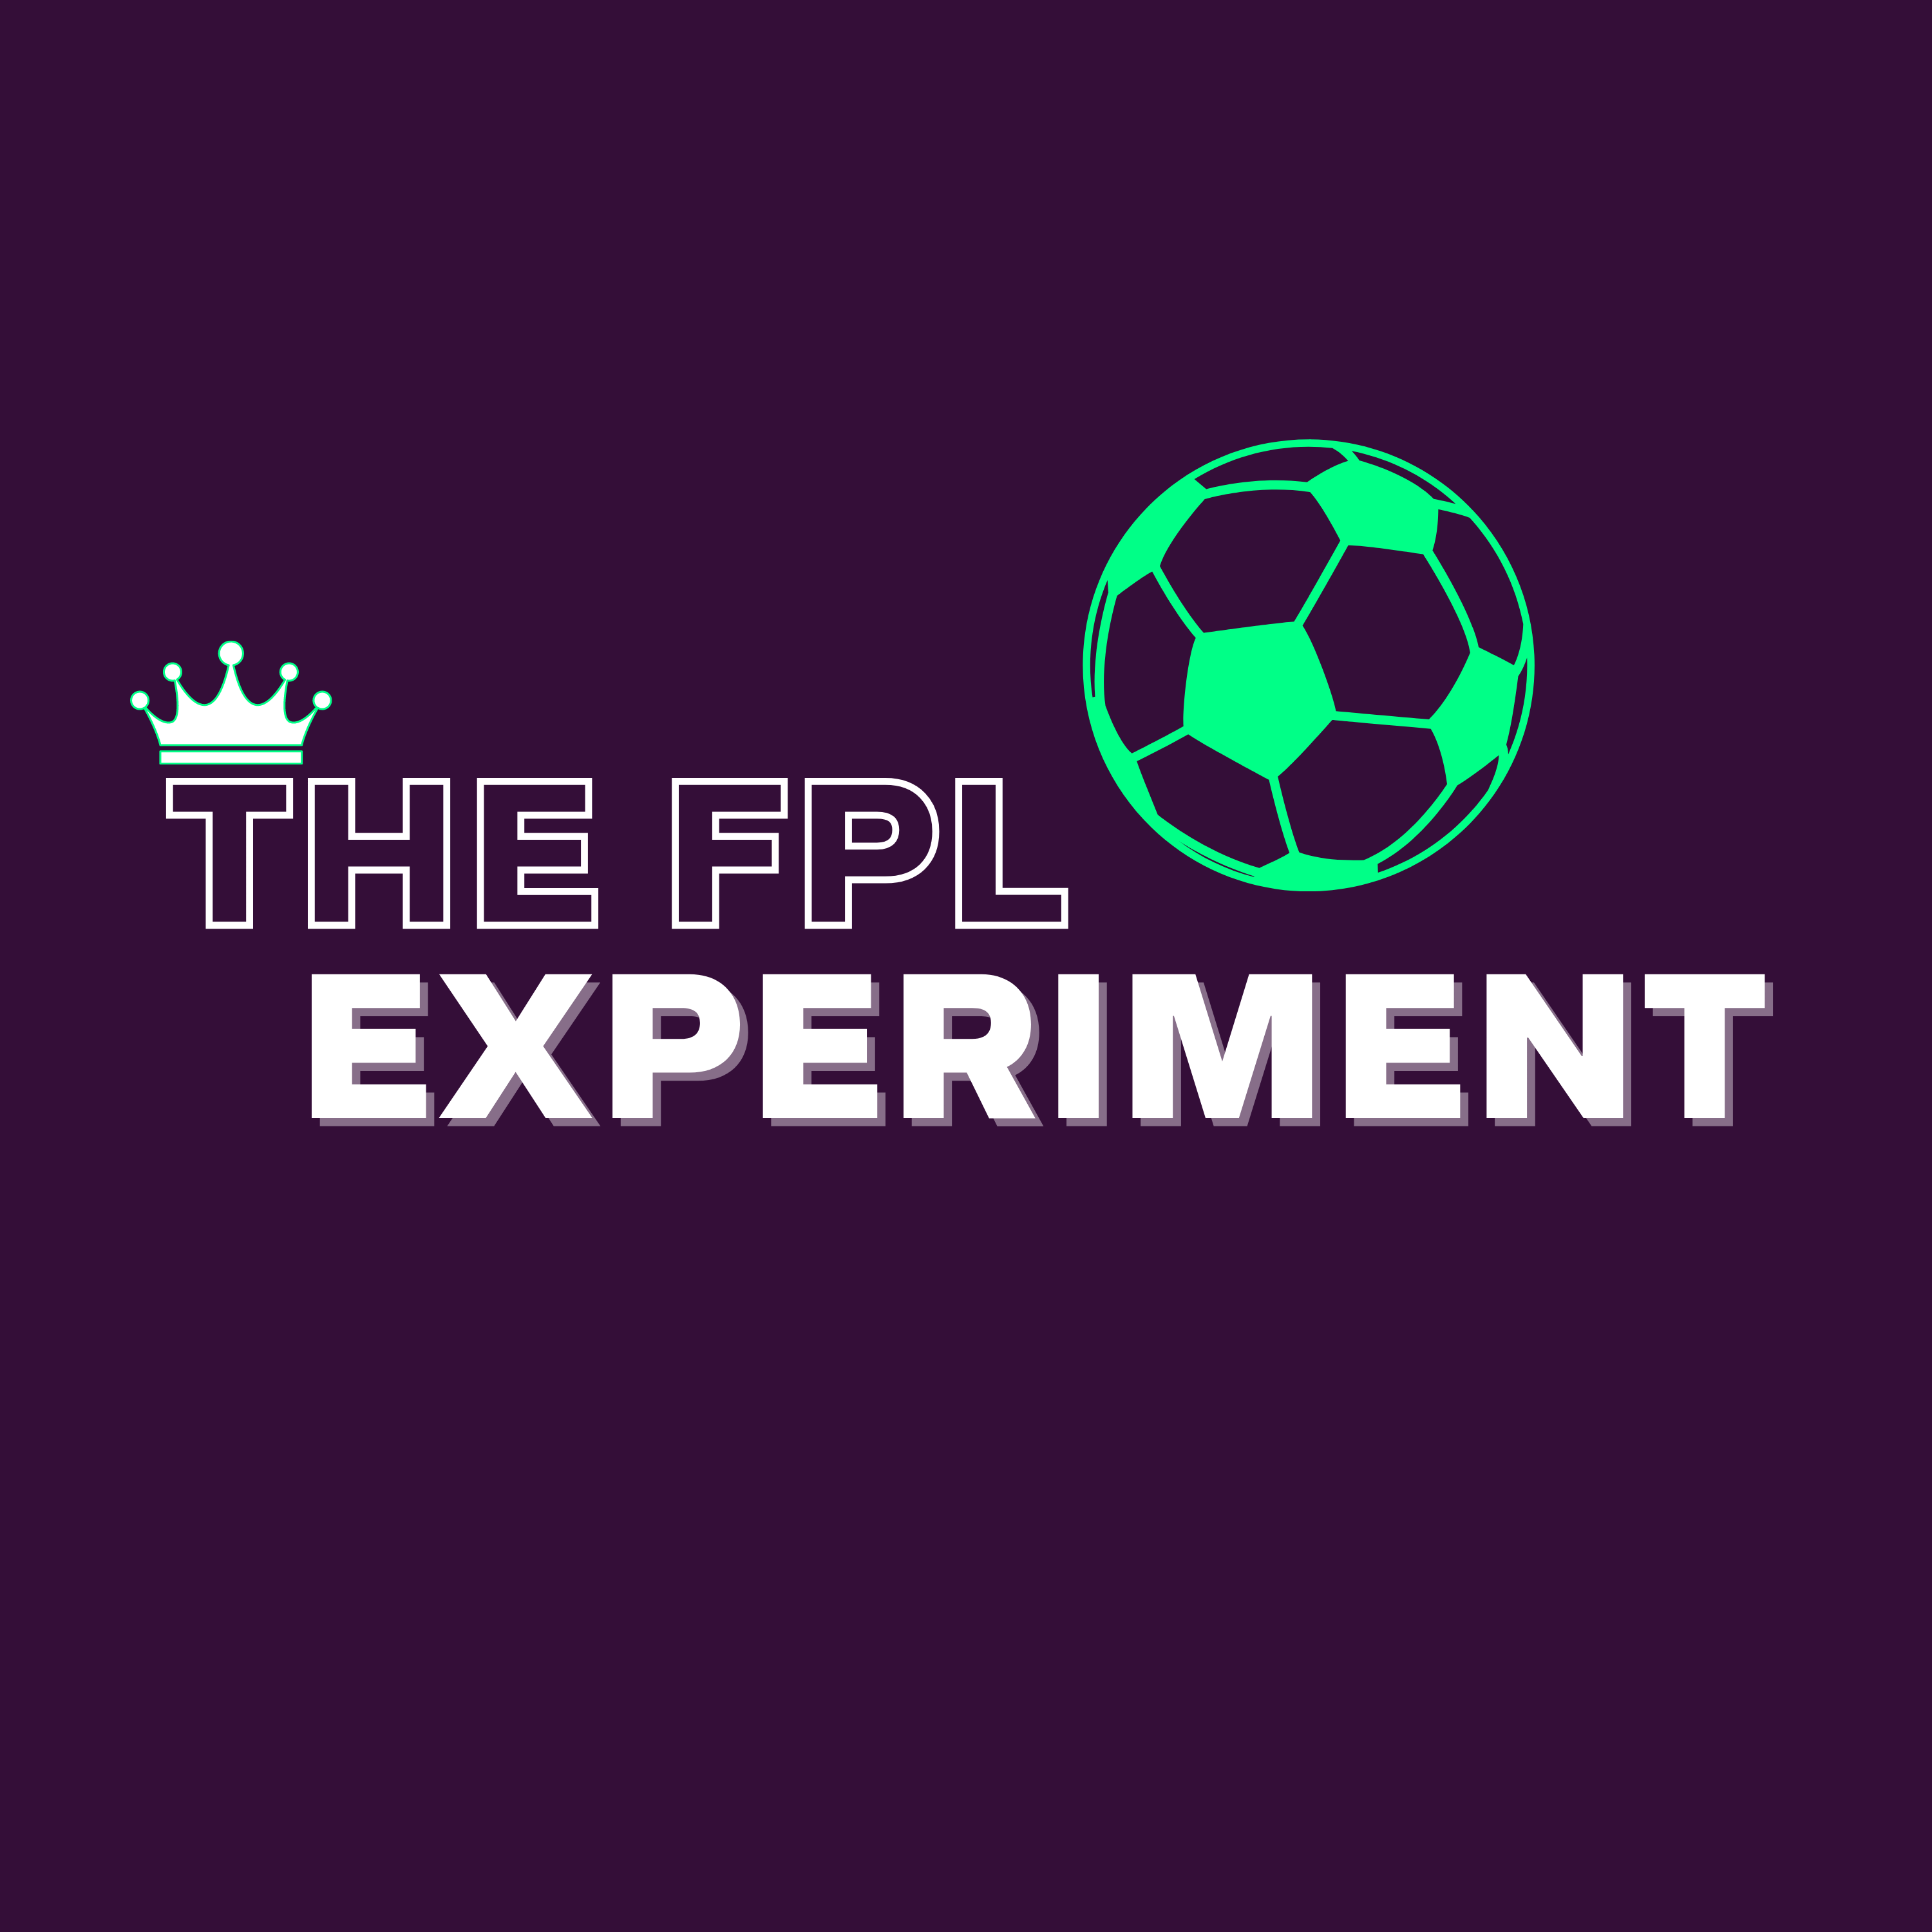 Artwork for podcast The FPL Experiment